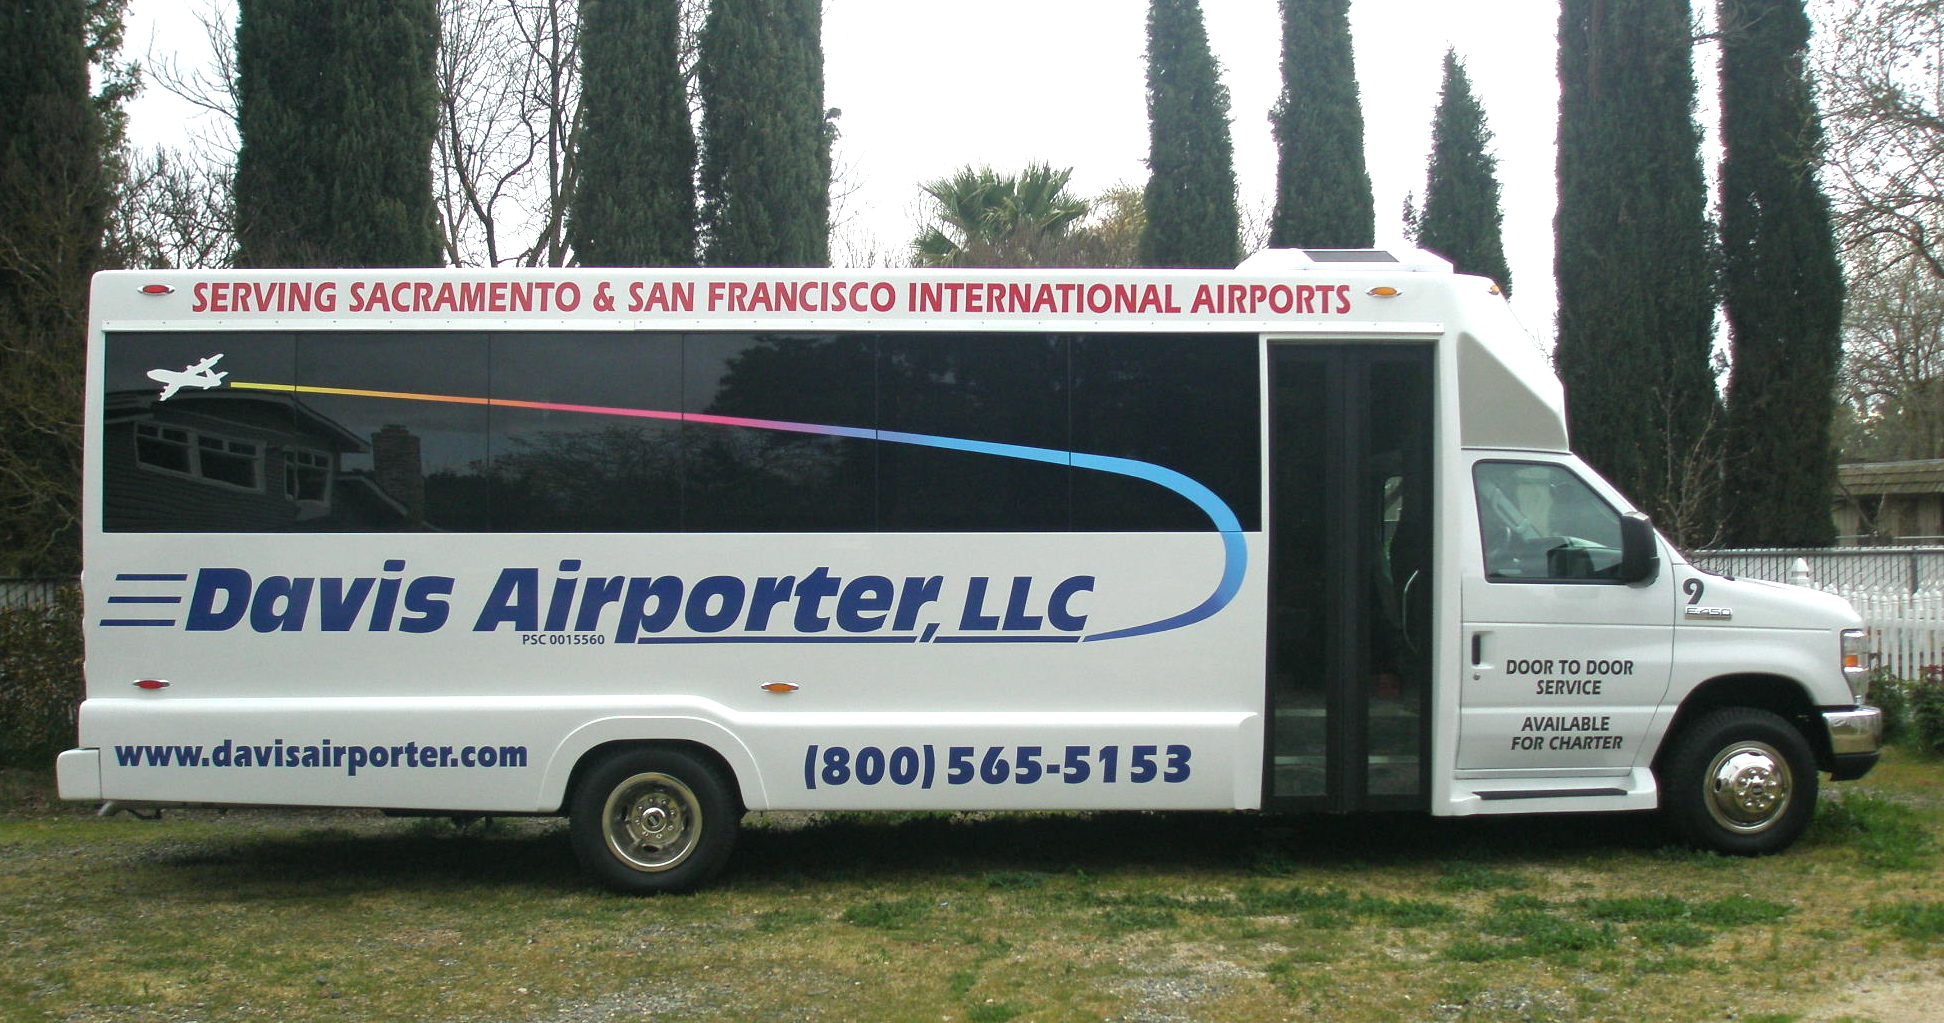 Airporter Big Bus.JPG